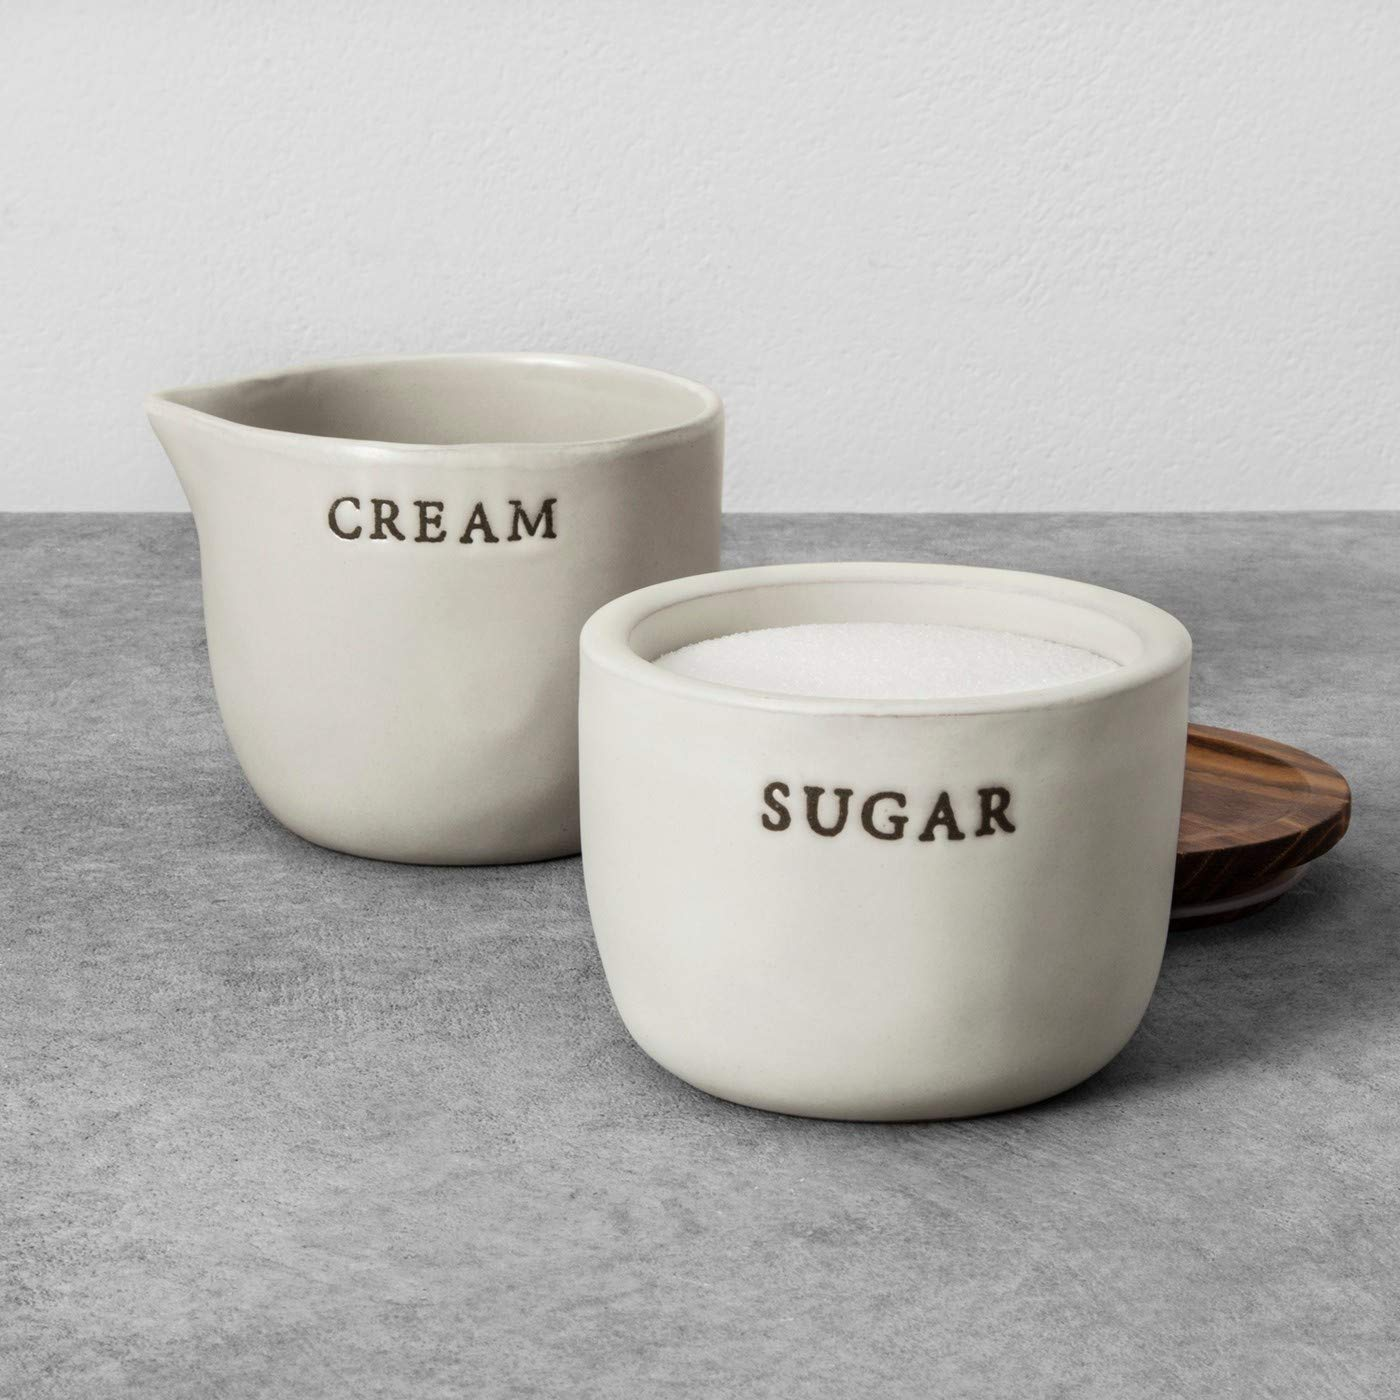 Hearth and Hand with Magnolia Stoneware Cream Cellar And Sugar Bowl Joanna Gaines Limited Edition by Hearth & and Hand with Magnolia (Image #1)